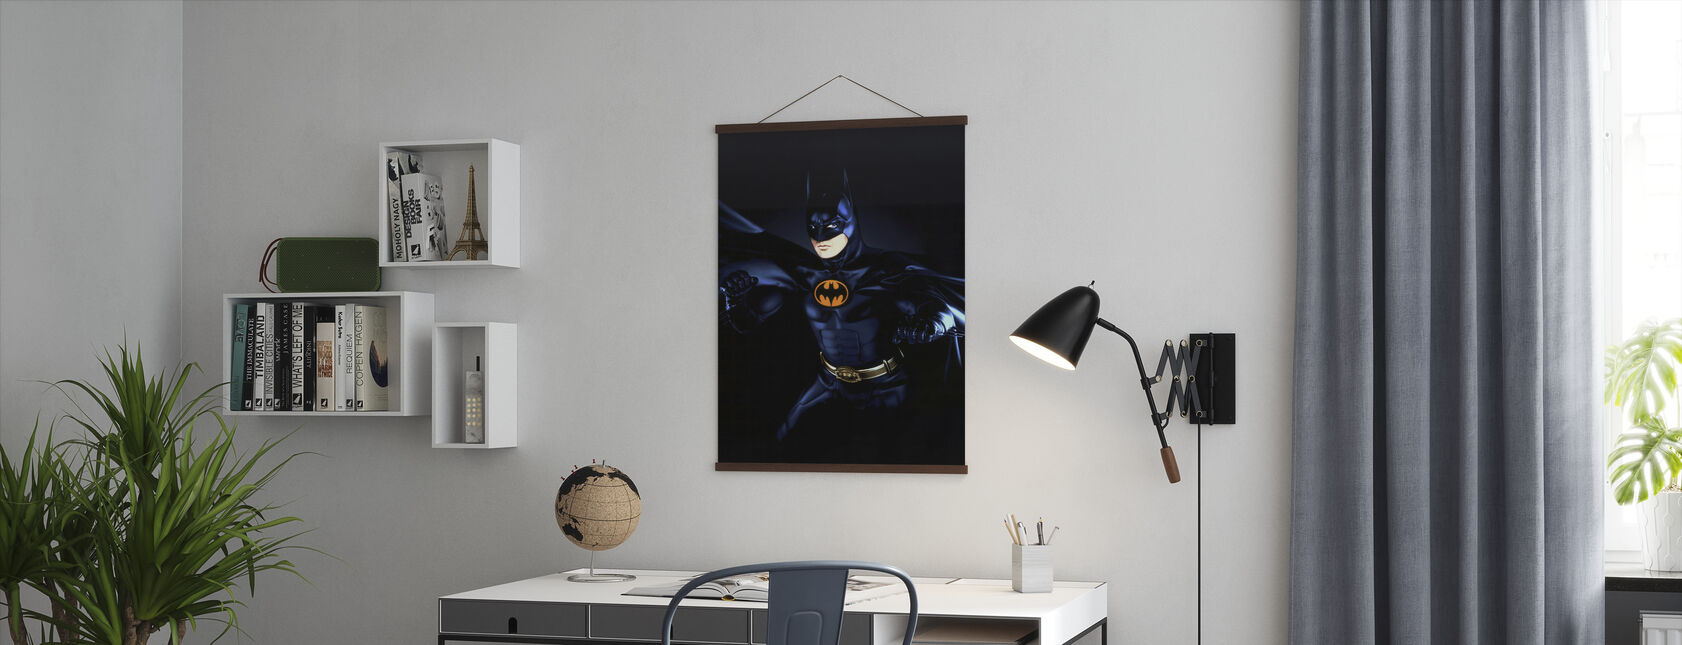 Michael Keaton in Batman Returns - Poster - Office